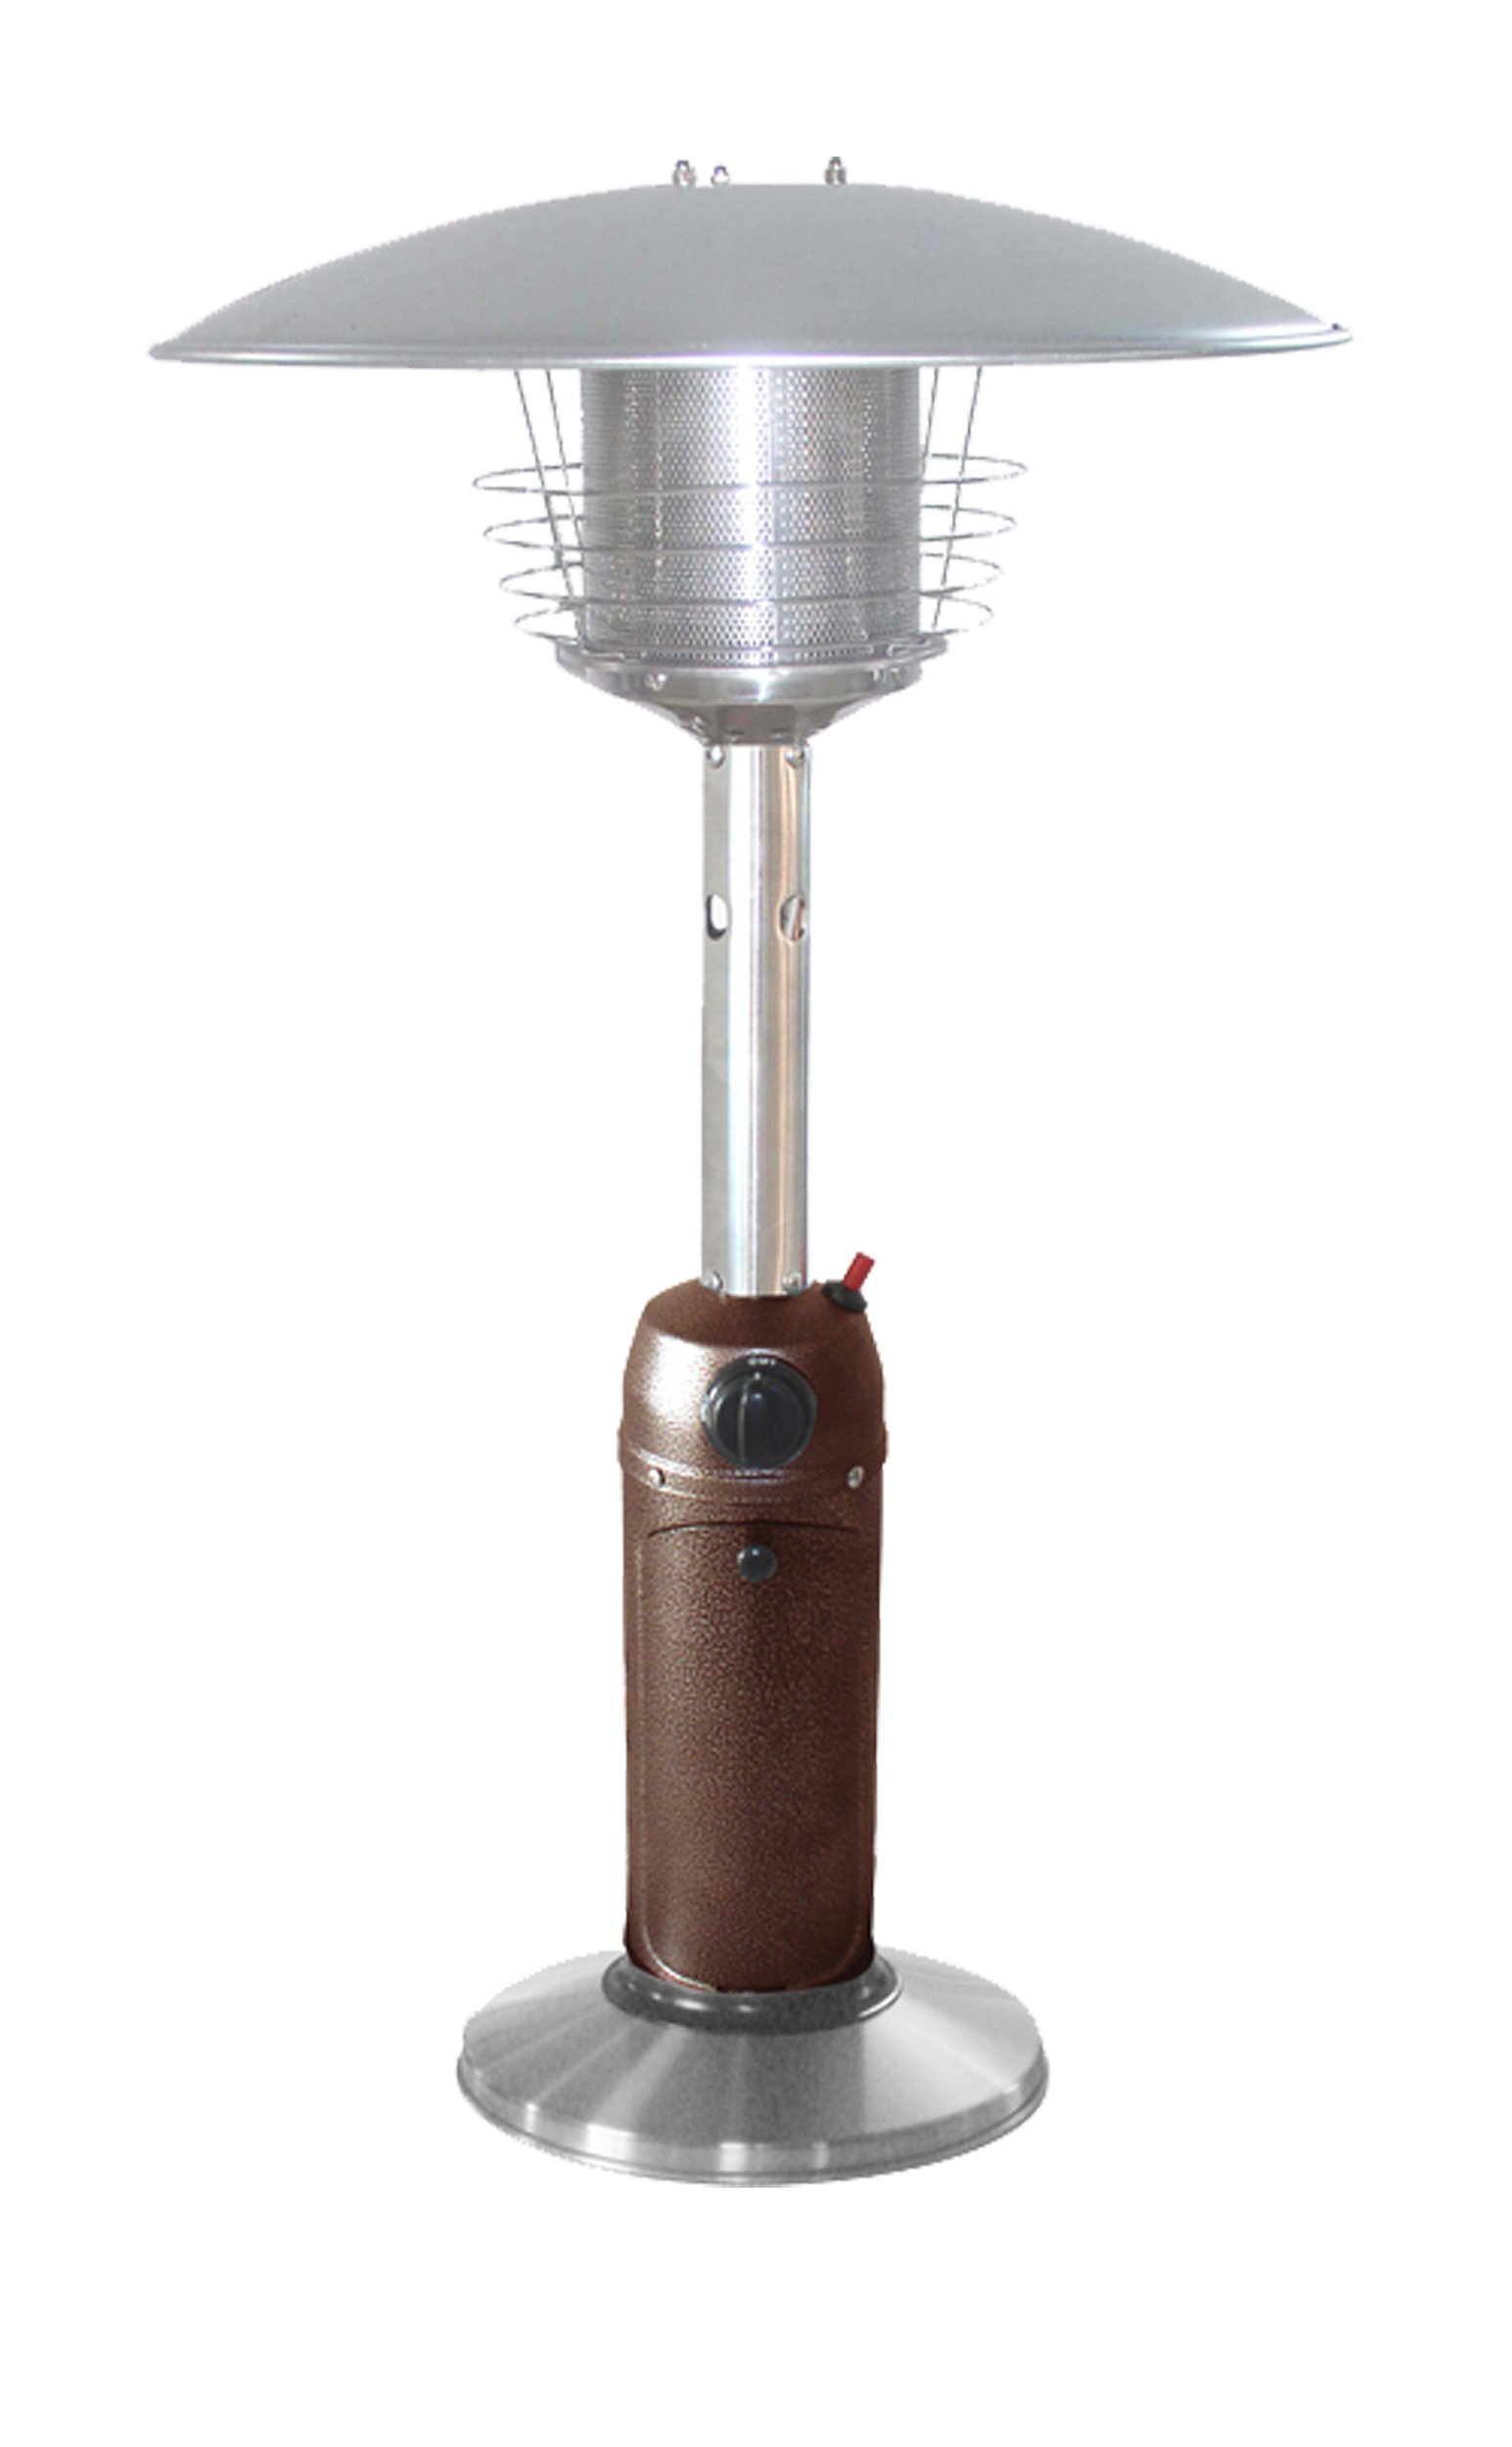 Hiland HLDS032-BB Portable Table Top Patio Heater, 11,000 BTU, Use 1lb or 20Lb Propane Tank, Hammered Bronze by Hiland